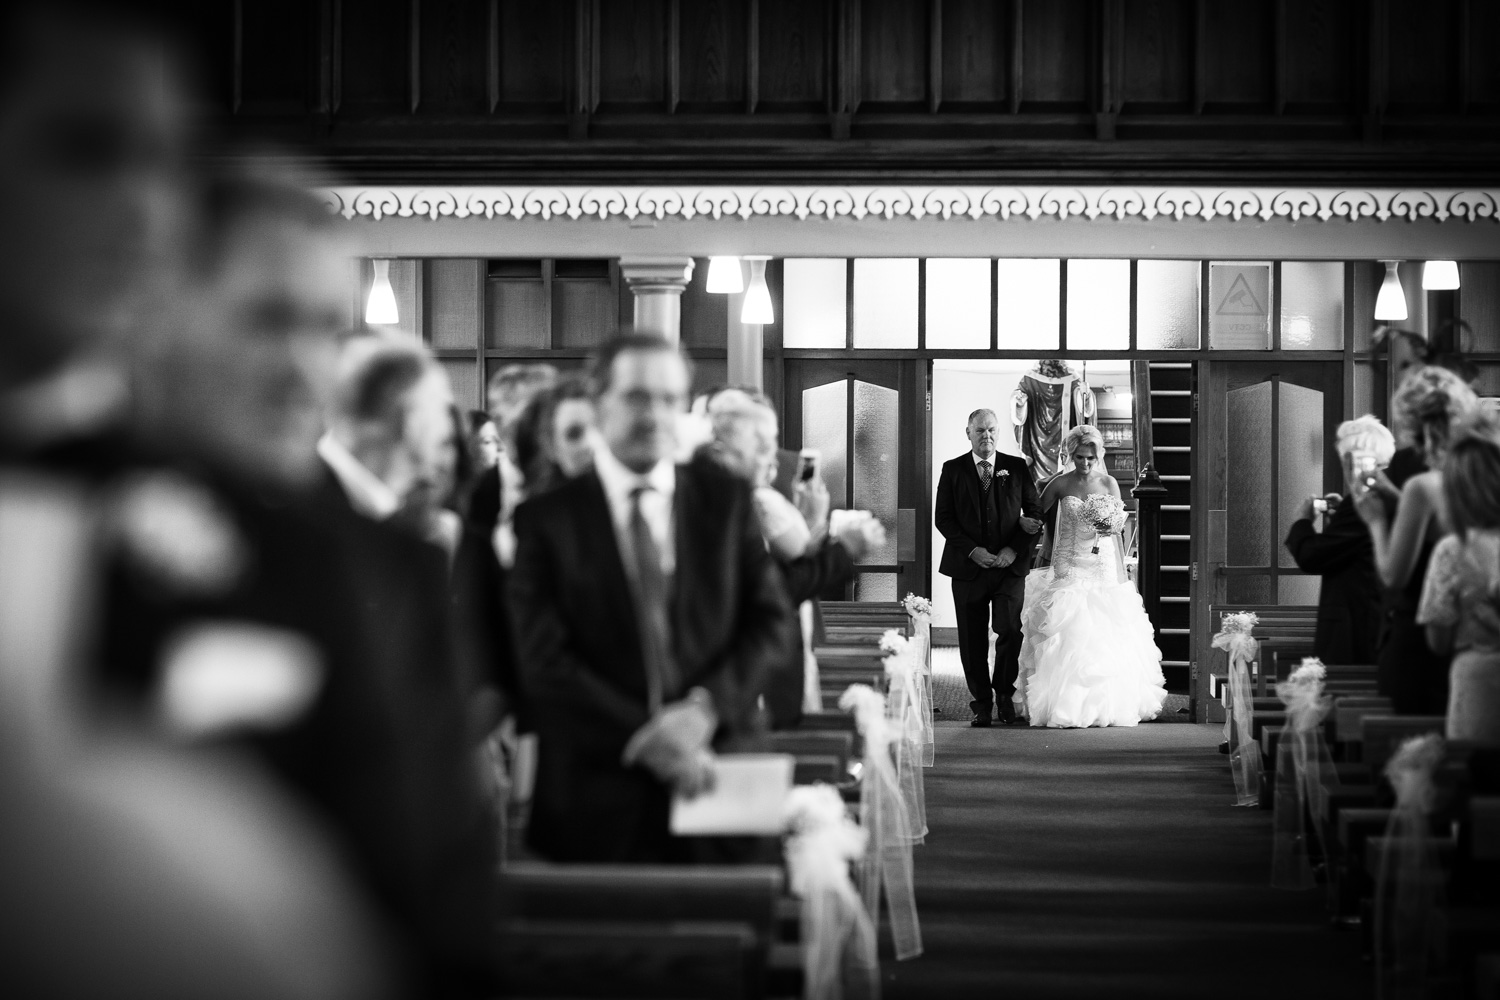 Mark_Barnes_wedding_photographer_Northern_Ireland_Wedding_photography_Carlingford_Four_Seasons_Wedding-22.jpg